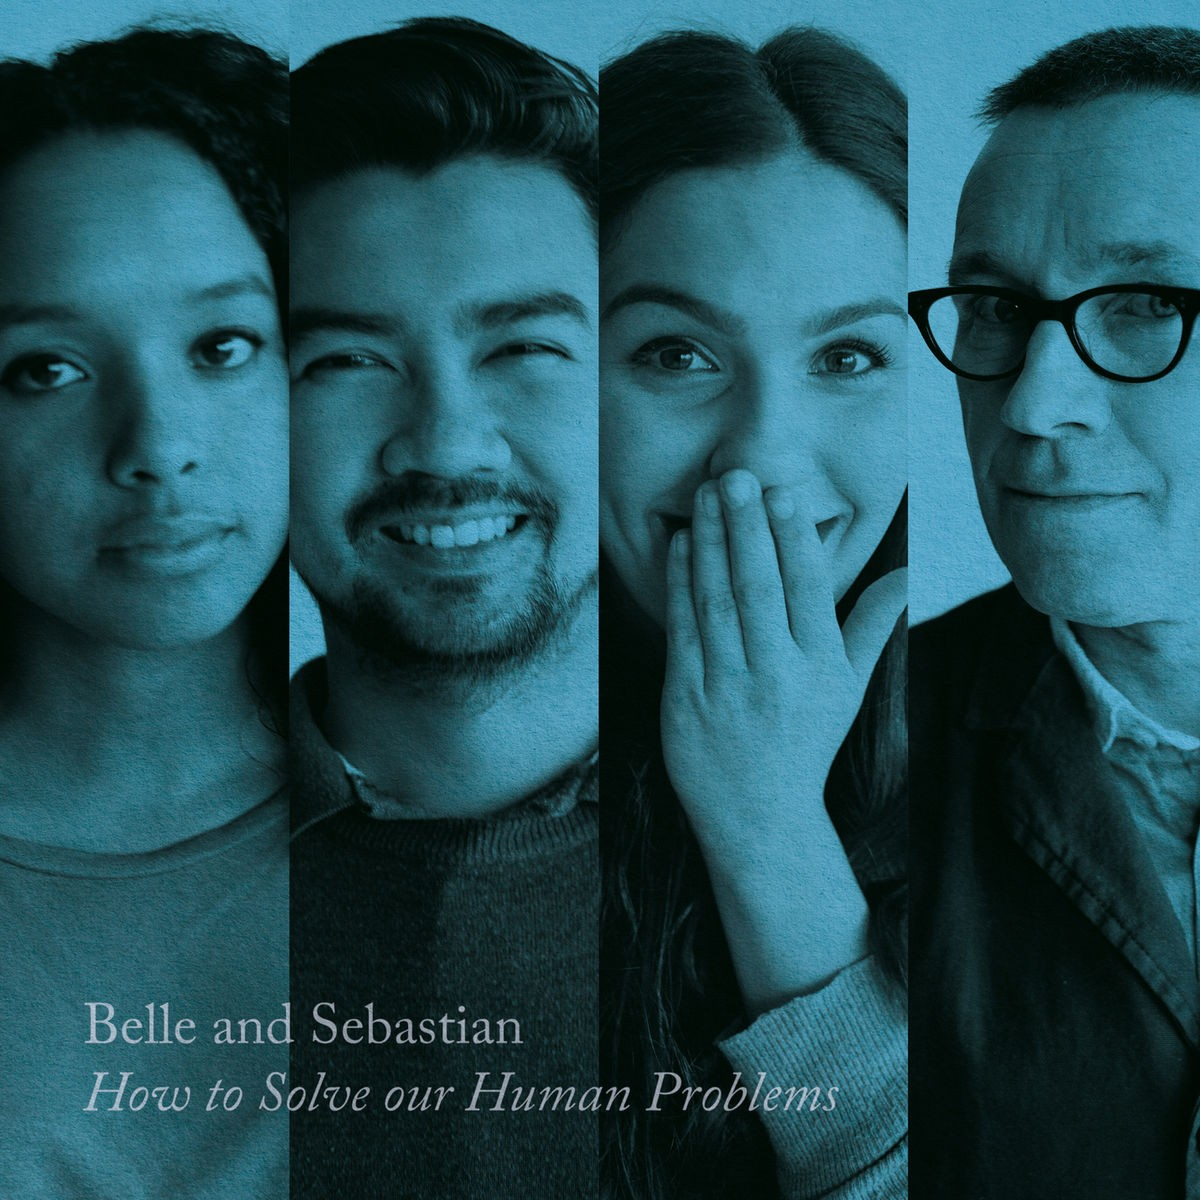 Belle And Sebastian - How to Solve Our Human Problems, Pt. 3 - EP VINYL - OLE11961